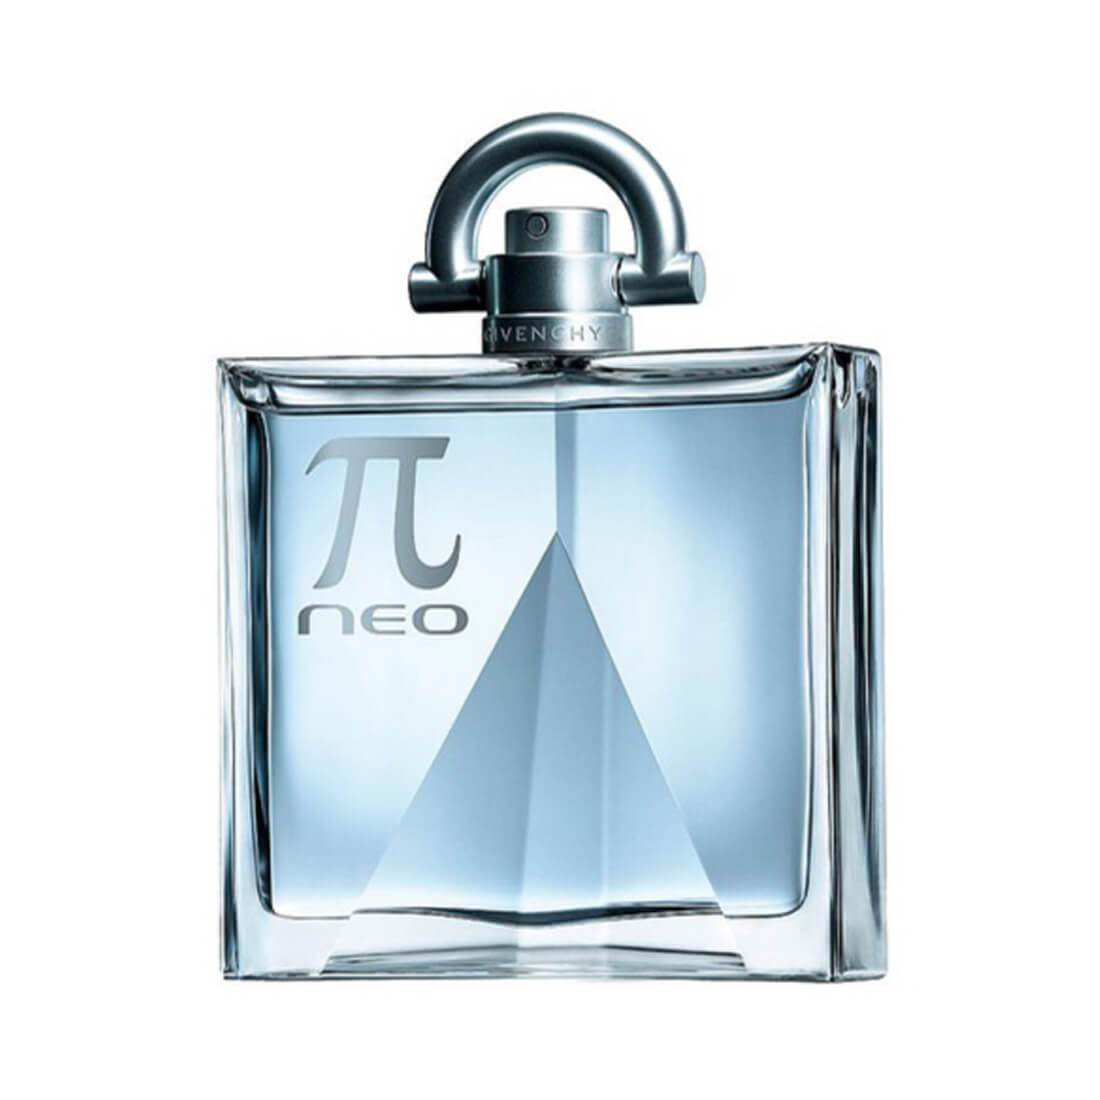 Givenchy Pi Neo EDT Perfume For Men